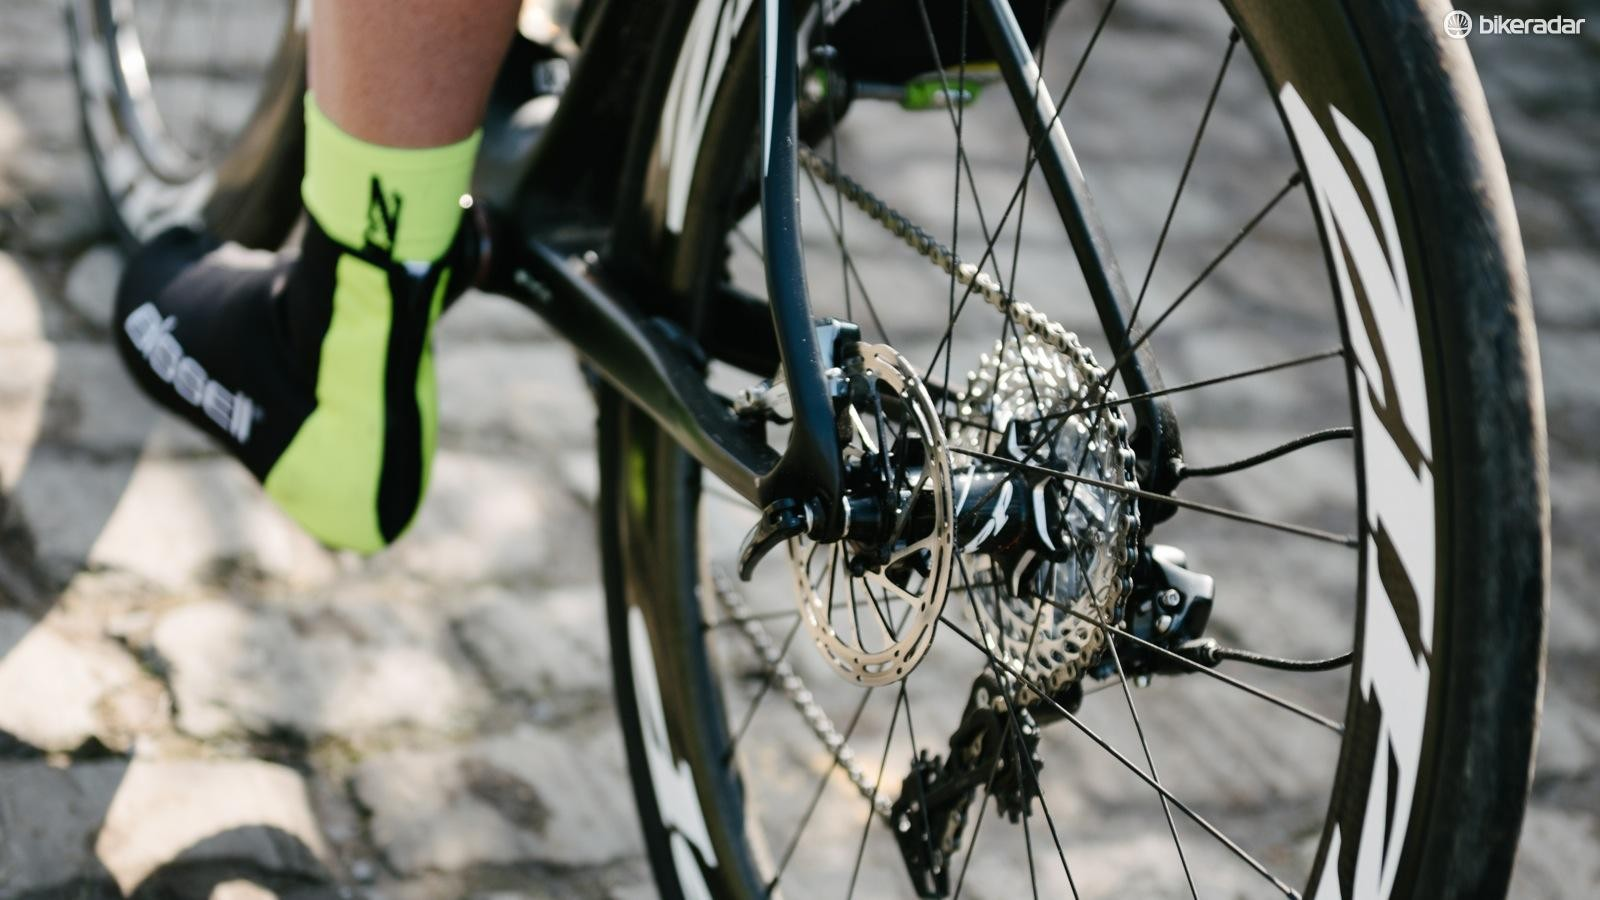 Road disc brakes made a limited appearance in pro racing in 2016, but everyday riders have more choice now than ever